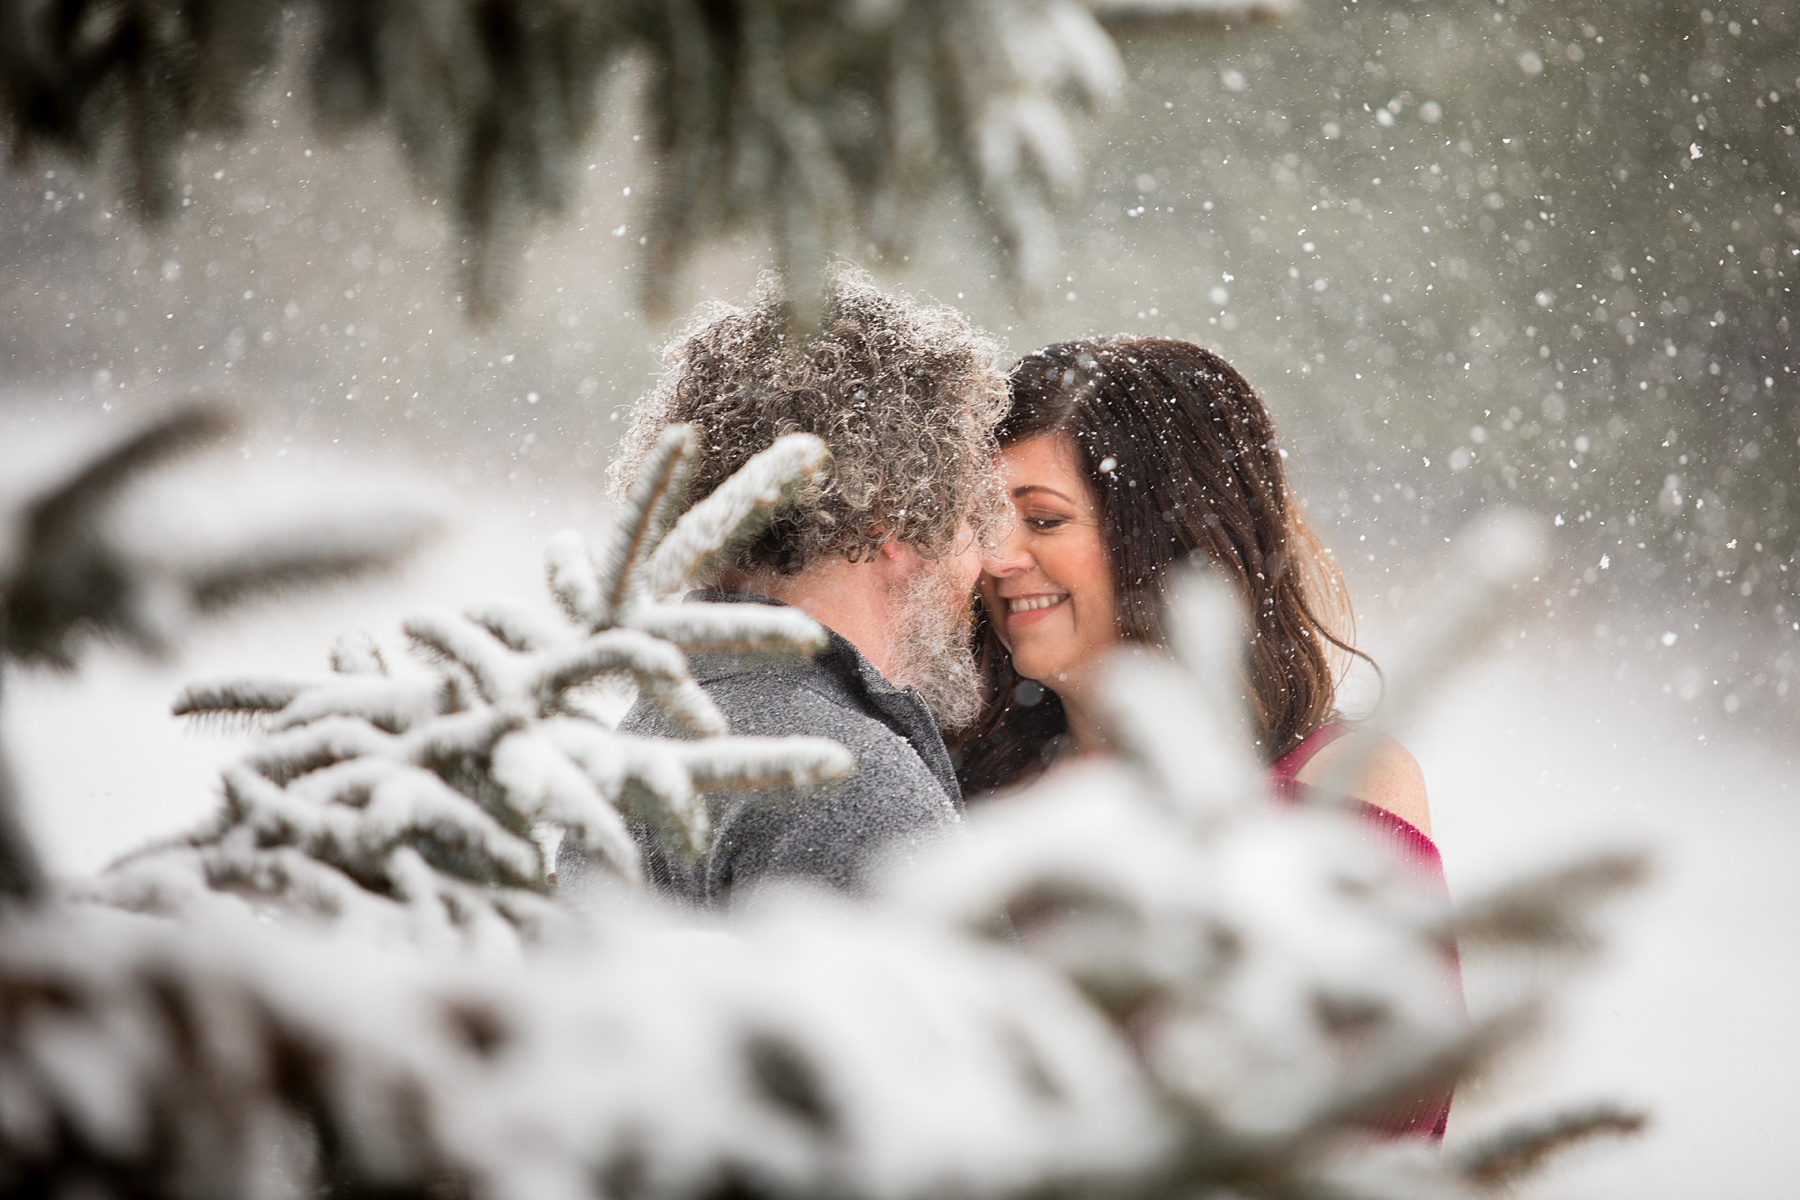 Brandon_Shafer_Photography_Winter_Engagement005.JPG